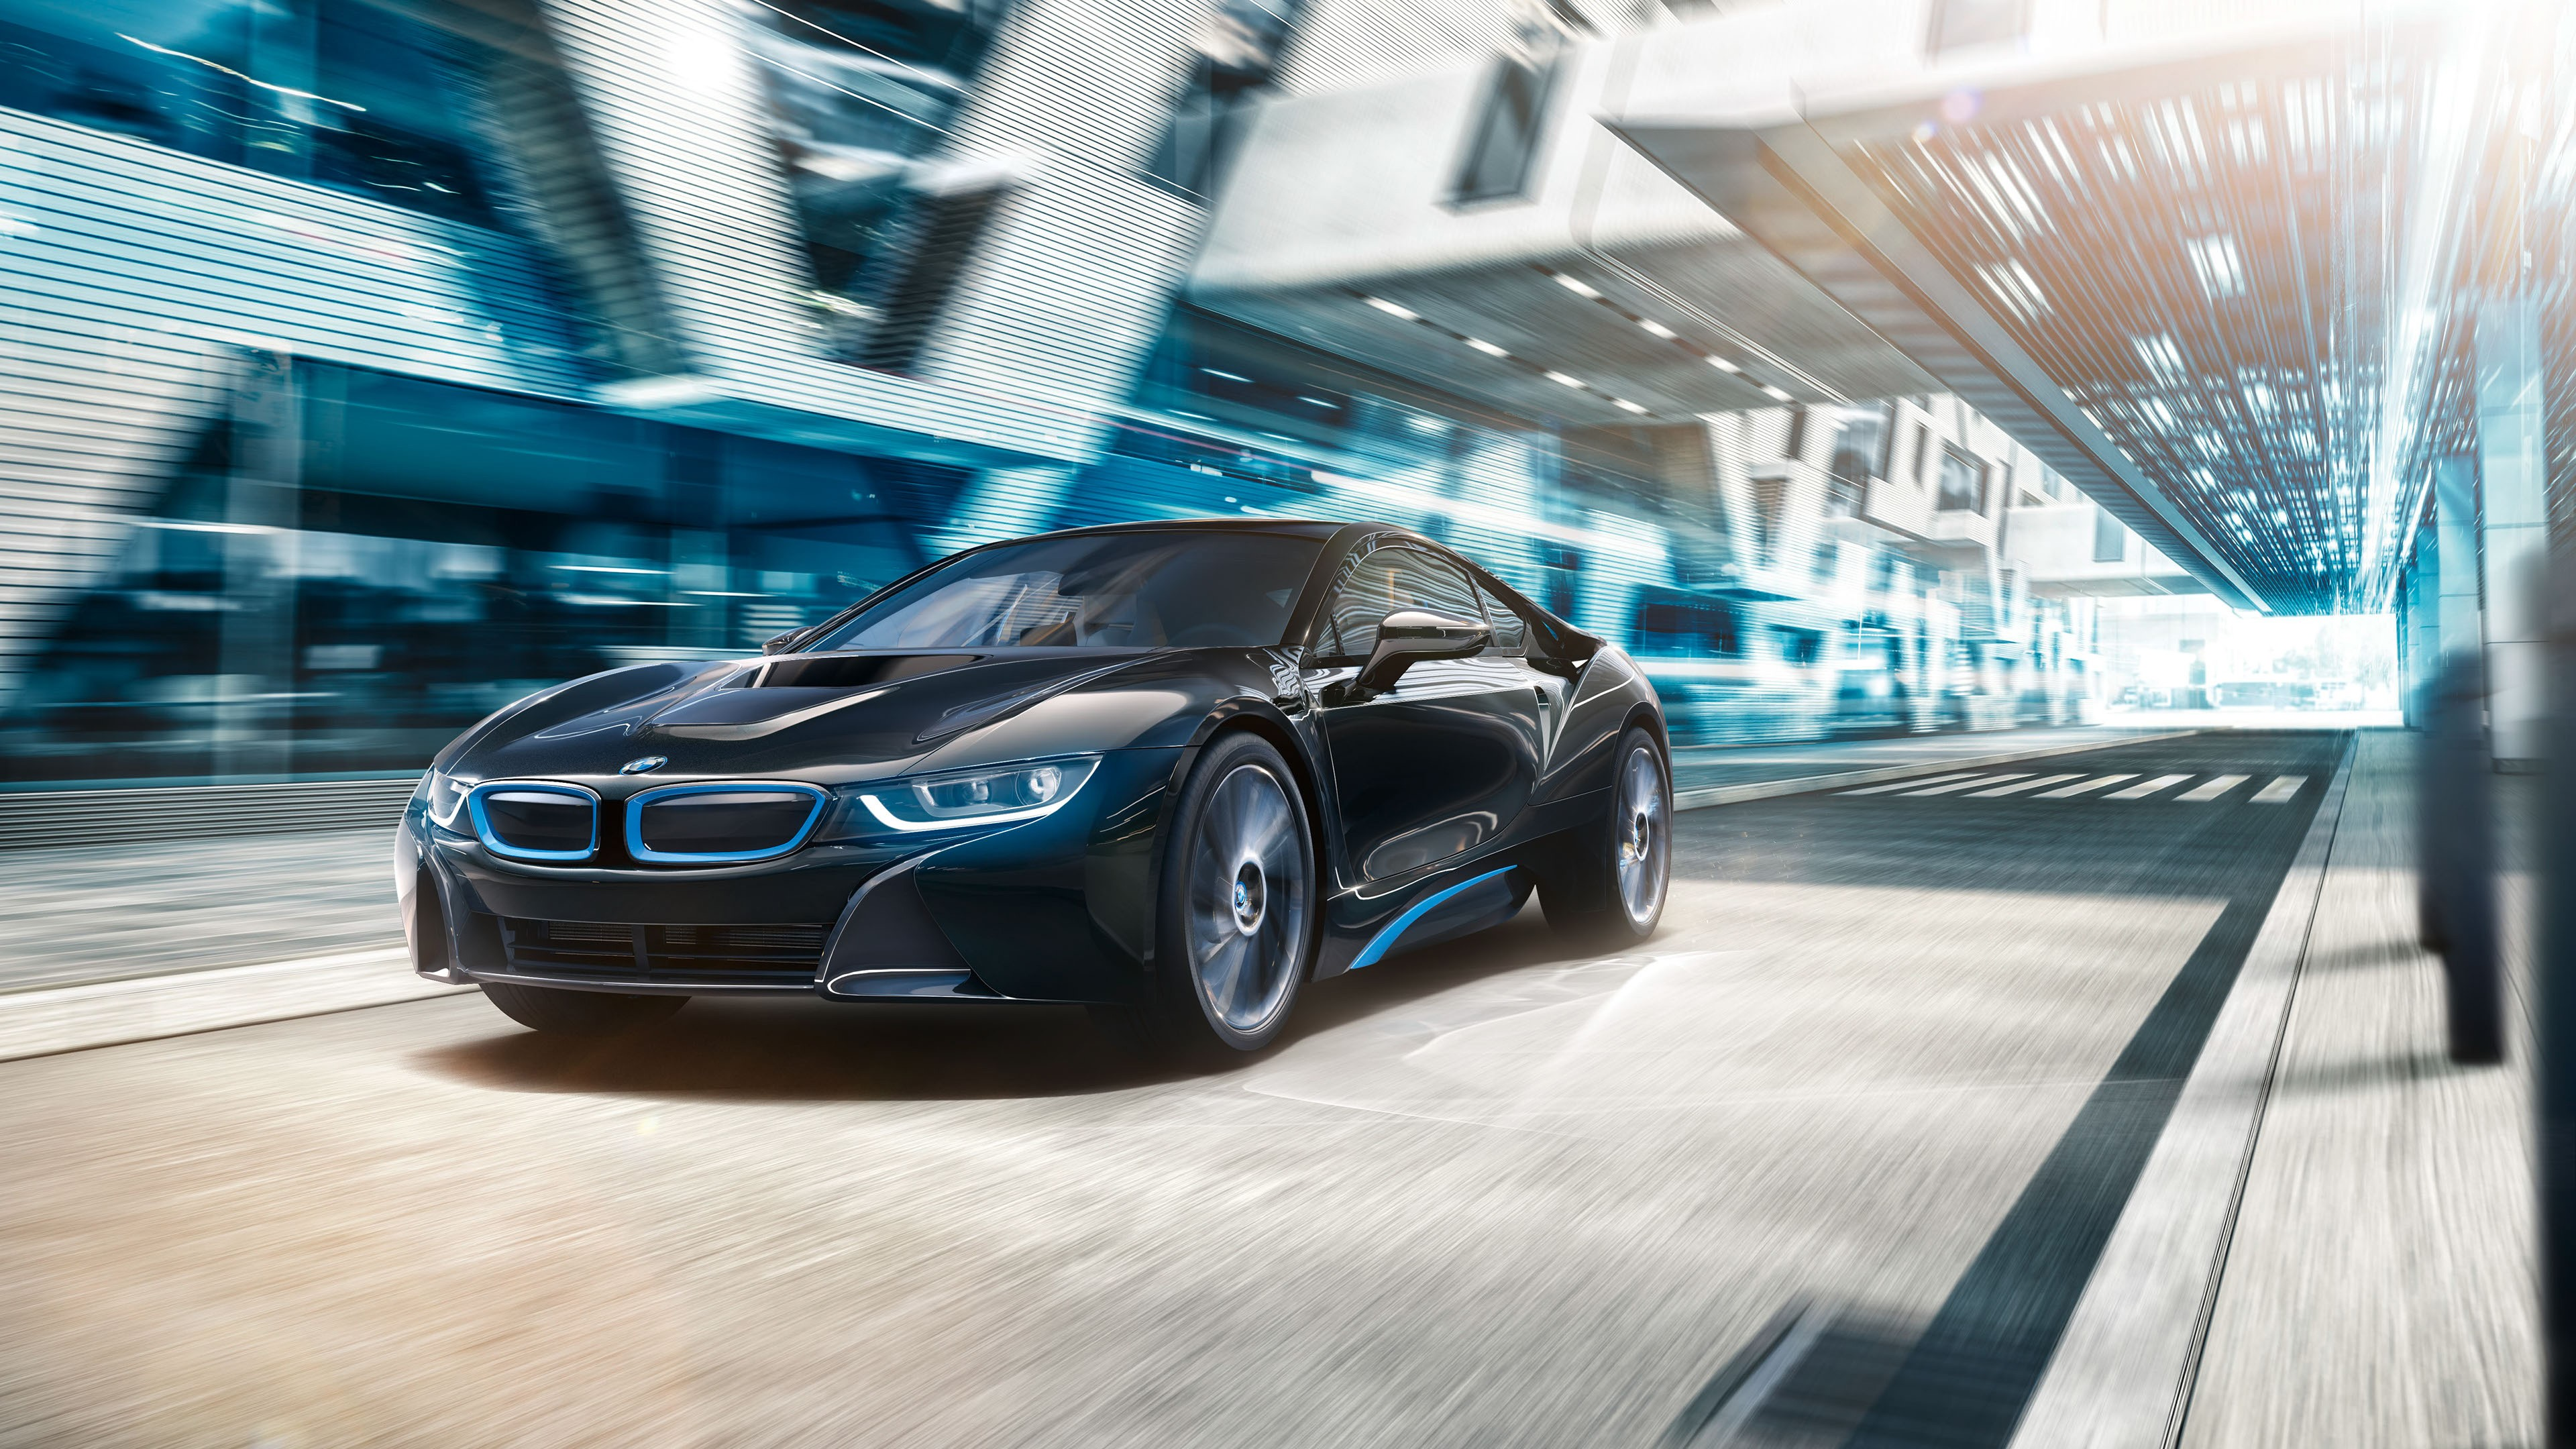 BMW i8 Night Black 4K Wallpaper | HD Car Wallpapers | ID #8099